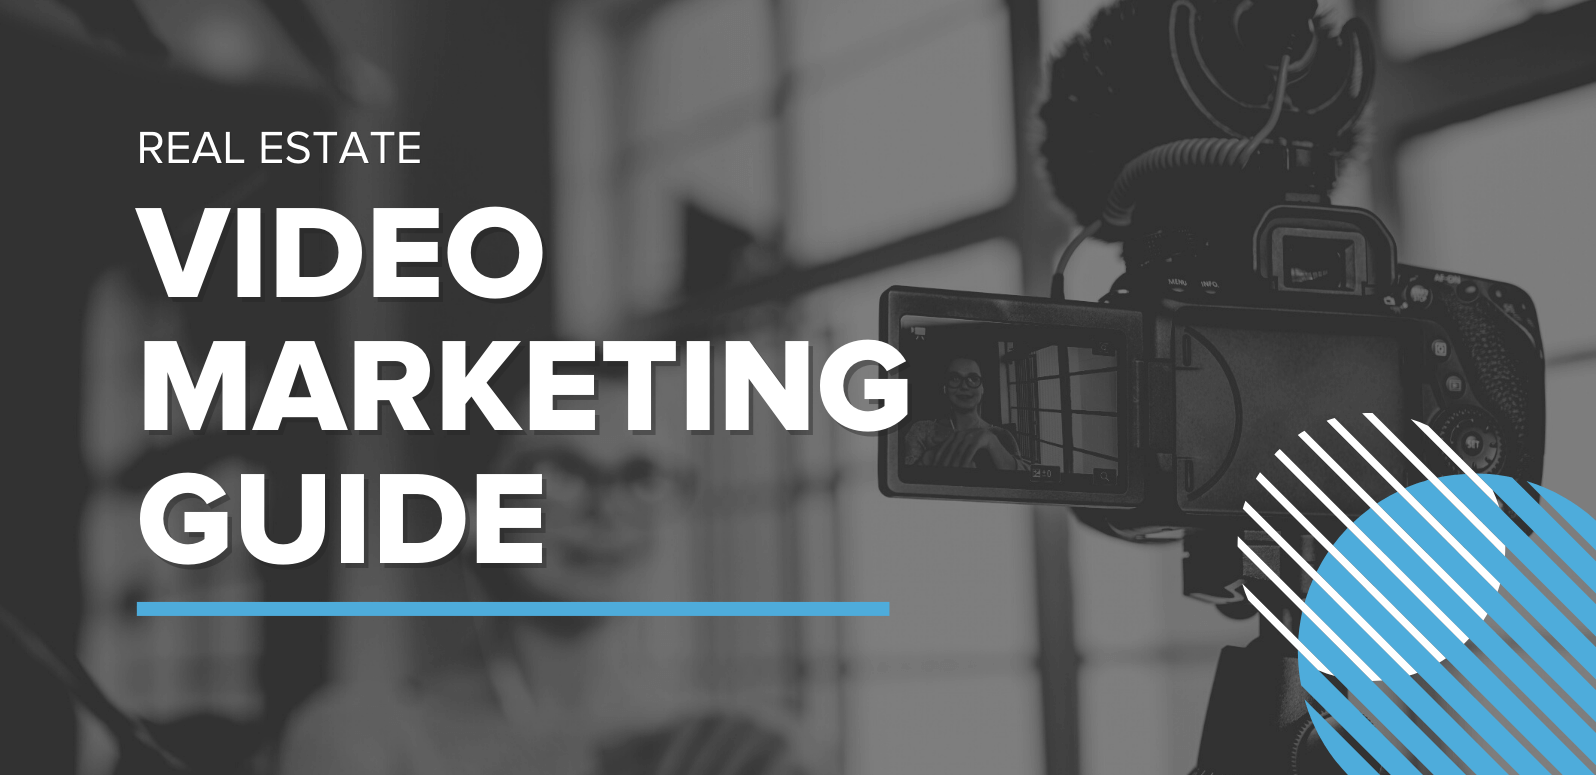 Real Estate Video Marketing: The Complete Guide for Getting Real ROI